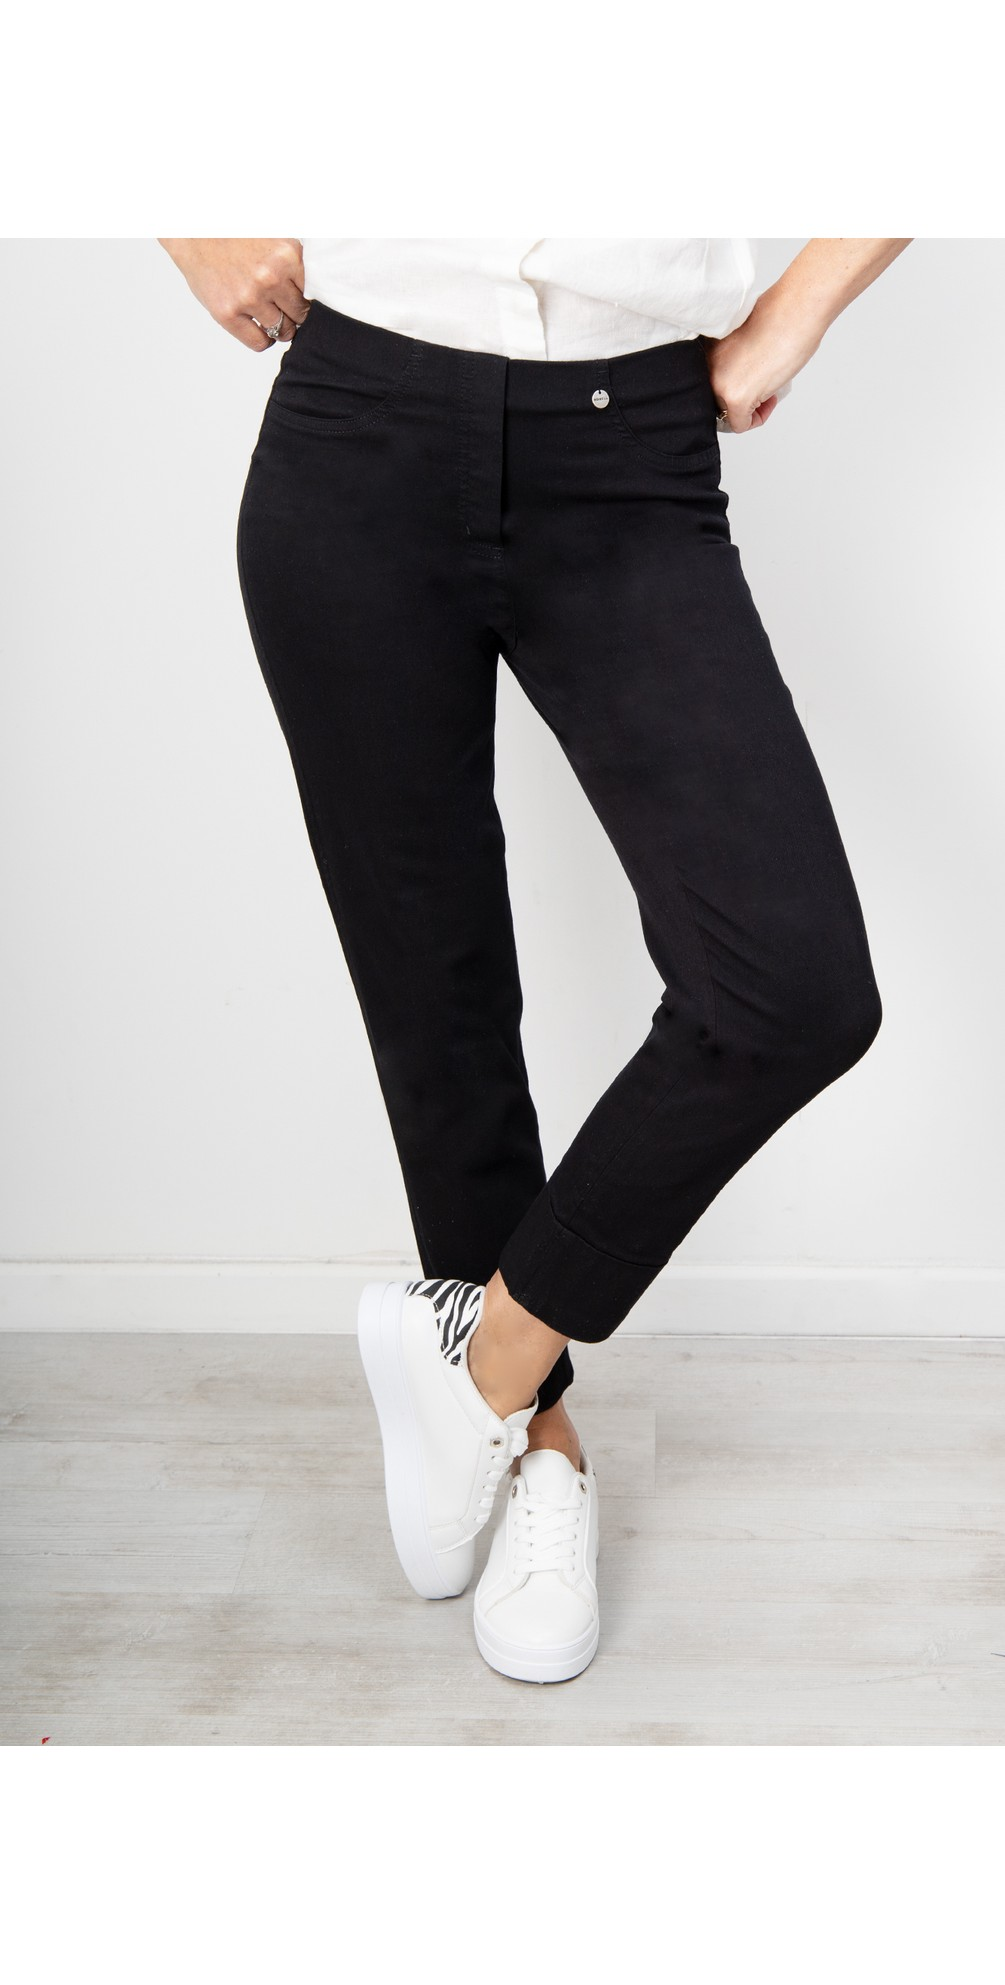 Bella 09 Black Ankle Crop Length Jean with Cuff main image